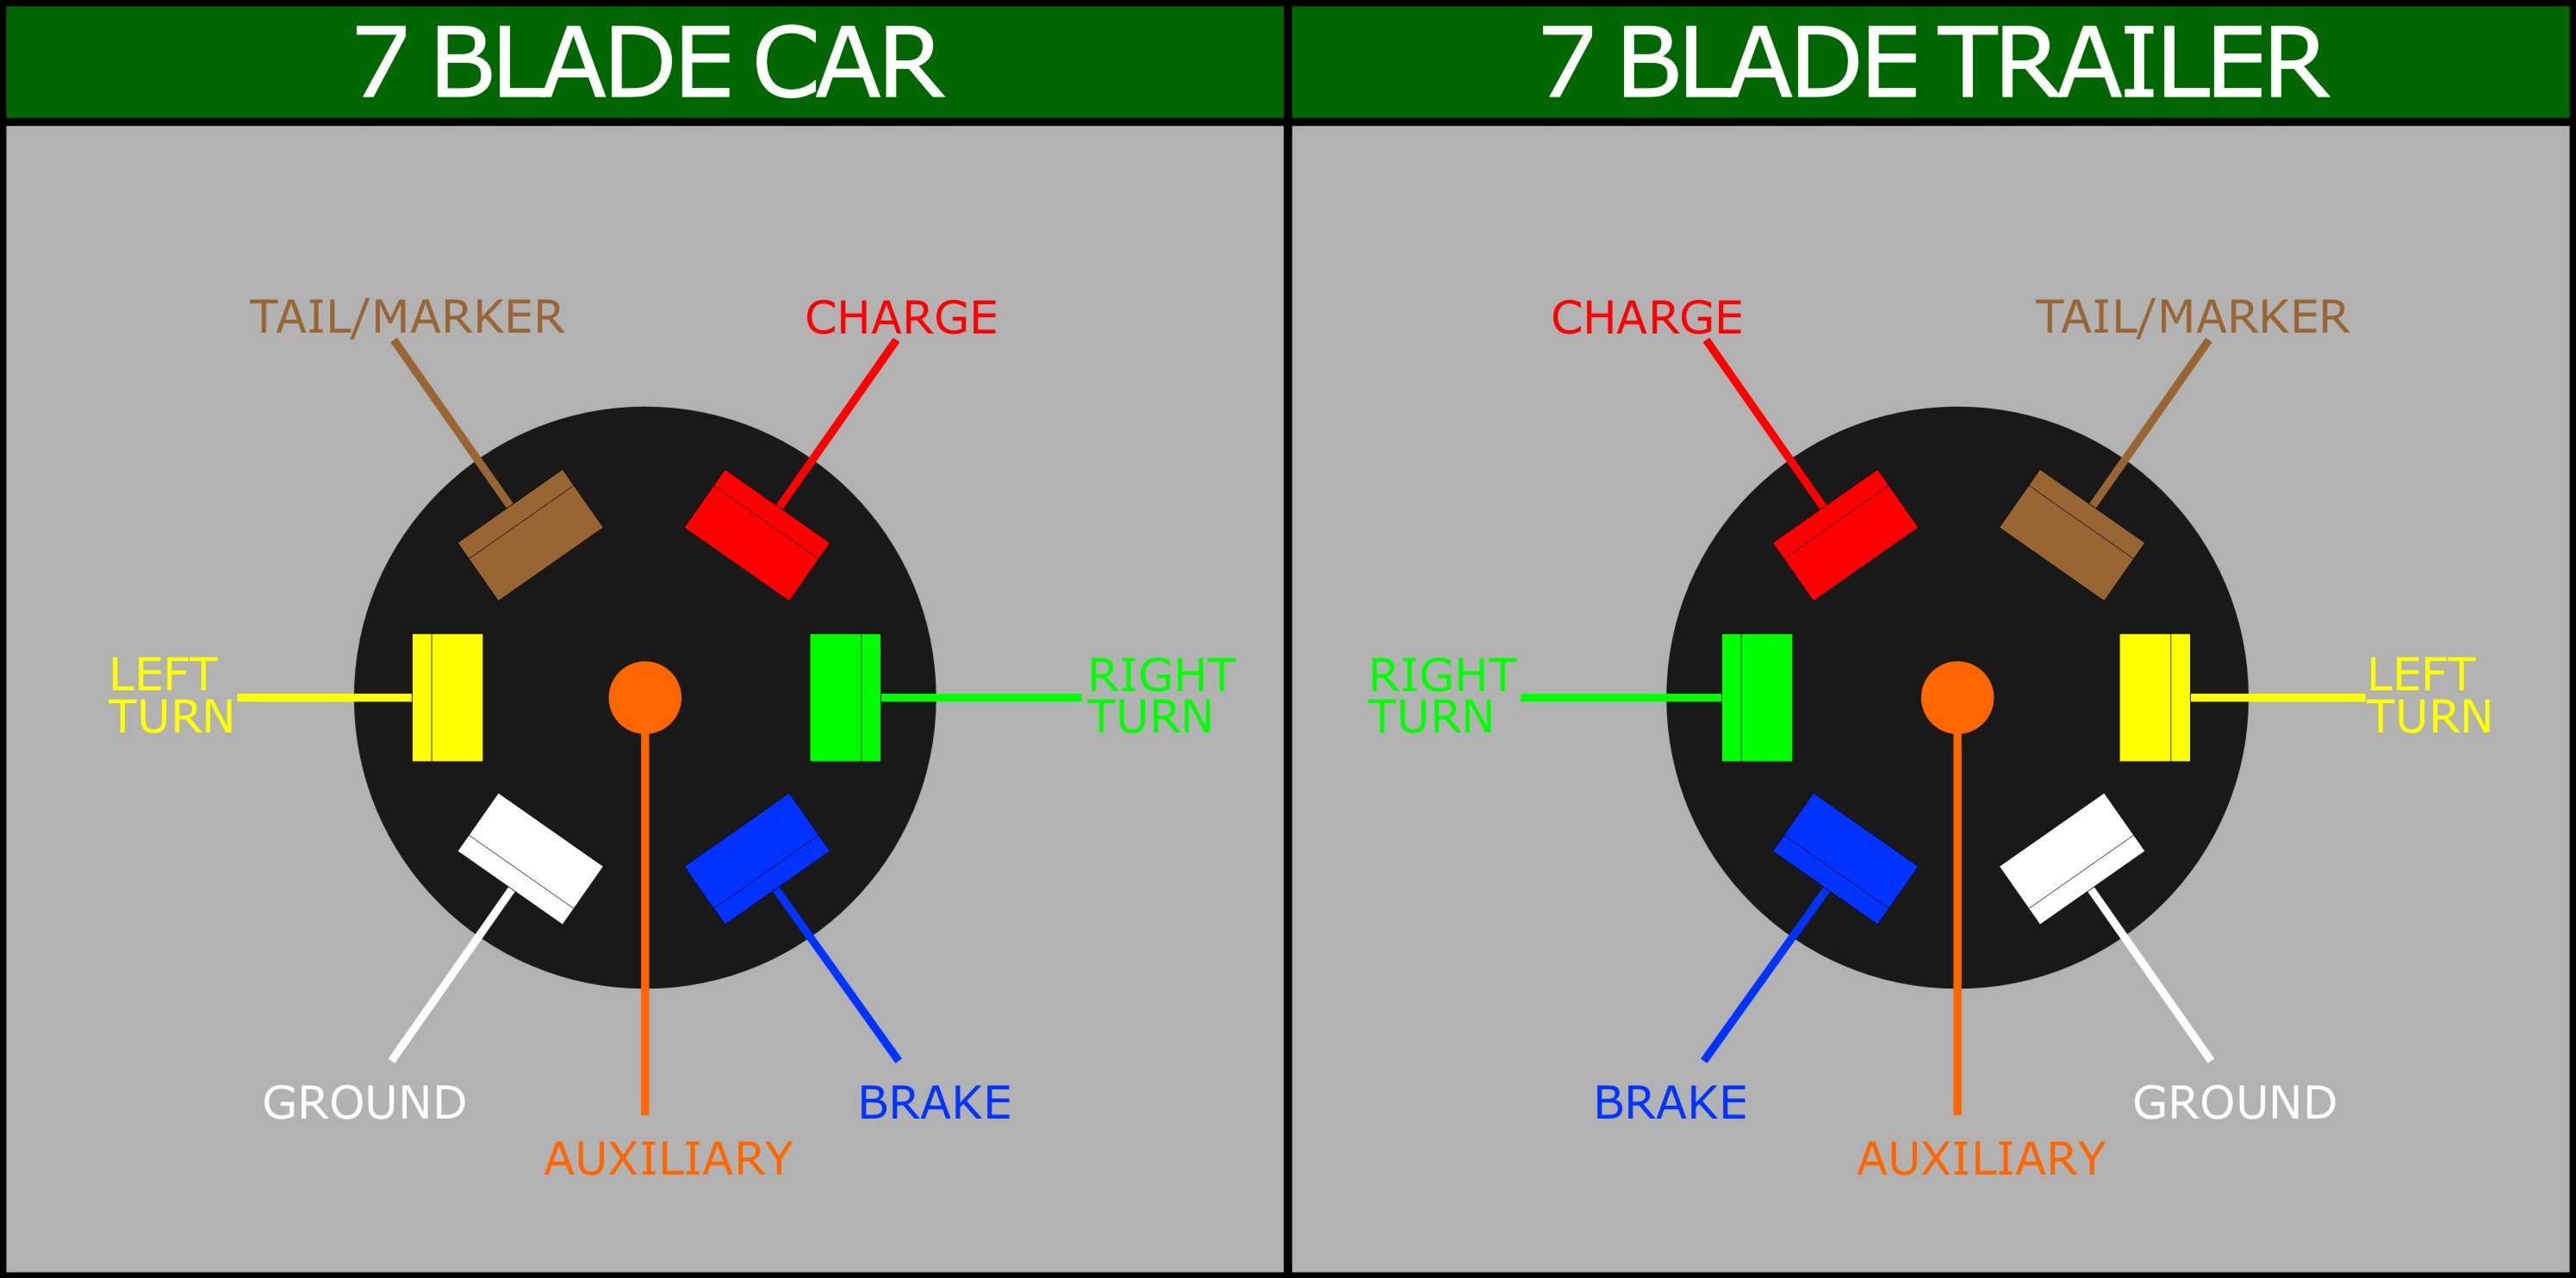 Wiring for 7 Blade Plug wiring a 7 blade trailer harness or plug dodge 7 way trailer wiring diagram at readyjetset.co